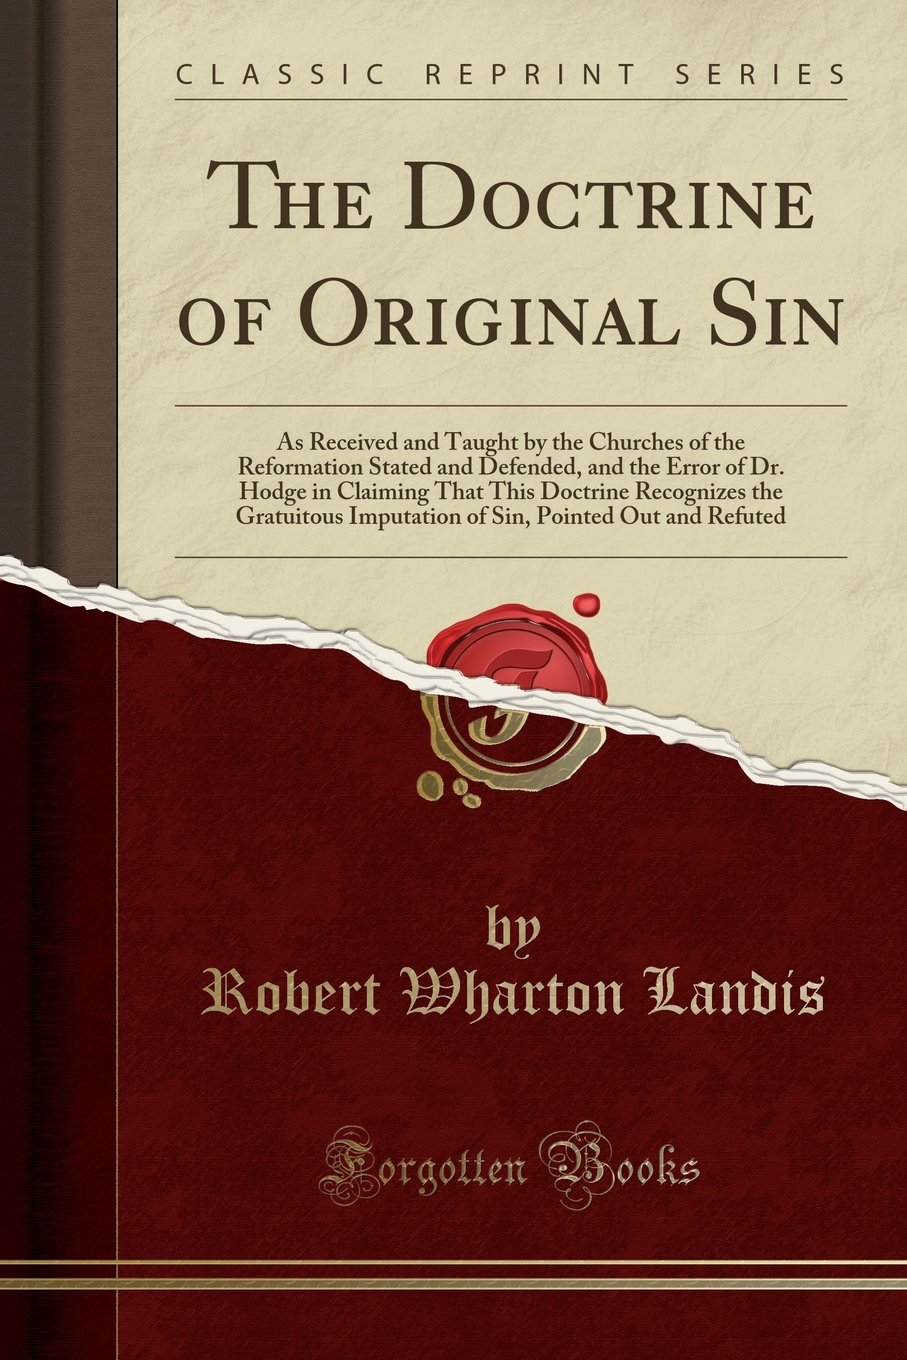 The Doctrine of Original Sin: As Received and Taught by the Churches of the Reformation Stated and Defended, and the Error of Dr. Hodge in Claiming ... Pointed Out and Refuted (Classic Reprint) pdf epub